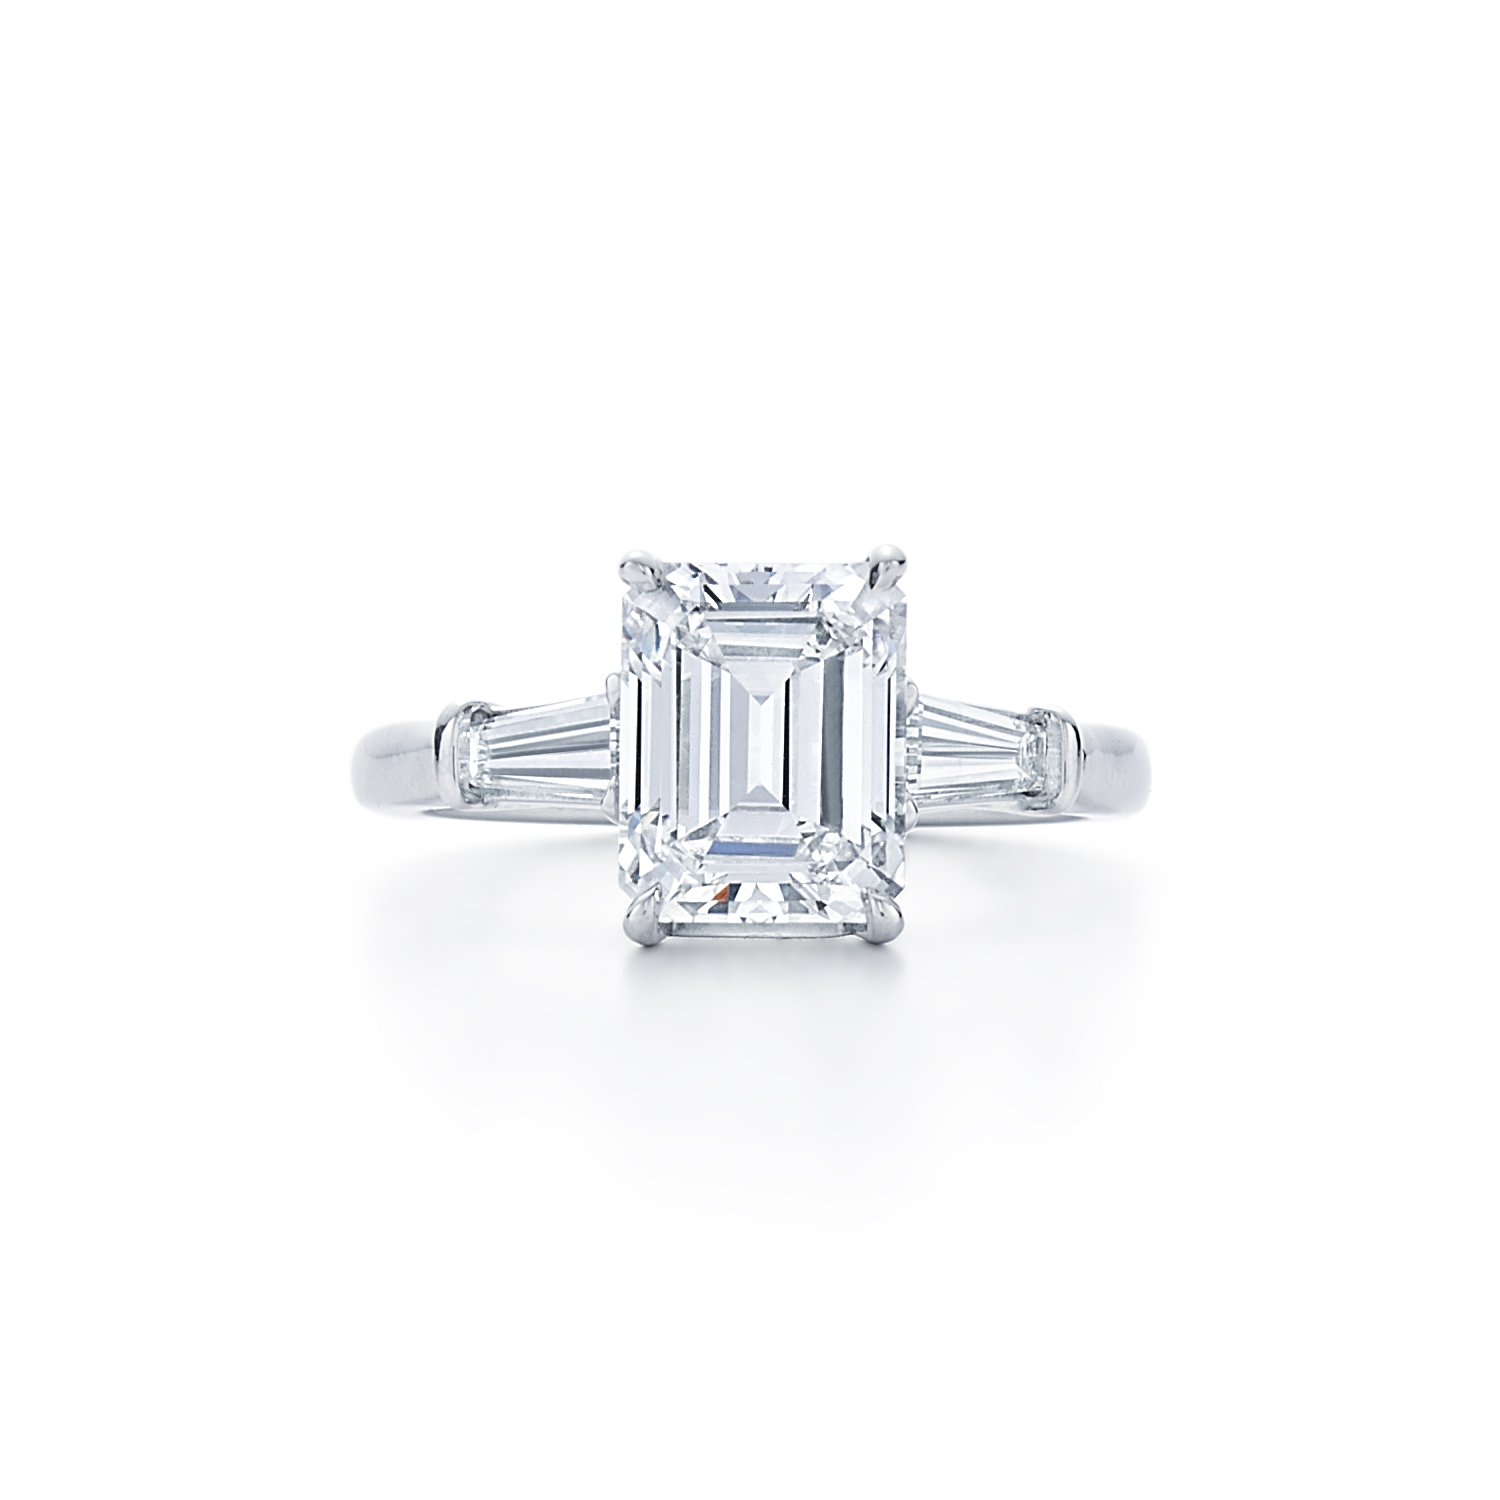 Emerald Cut Diamond Engagement Ring | Dk Gems With Cushion Cut Engagement Rings With Tapered Baguette Side Stones (View 14 of 25)